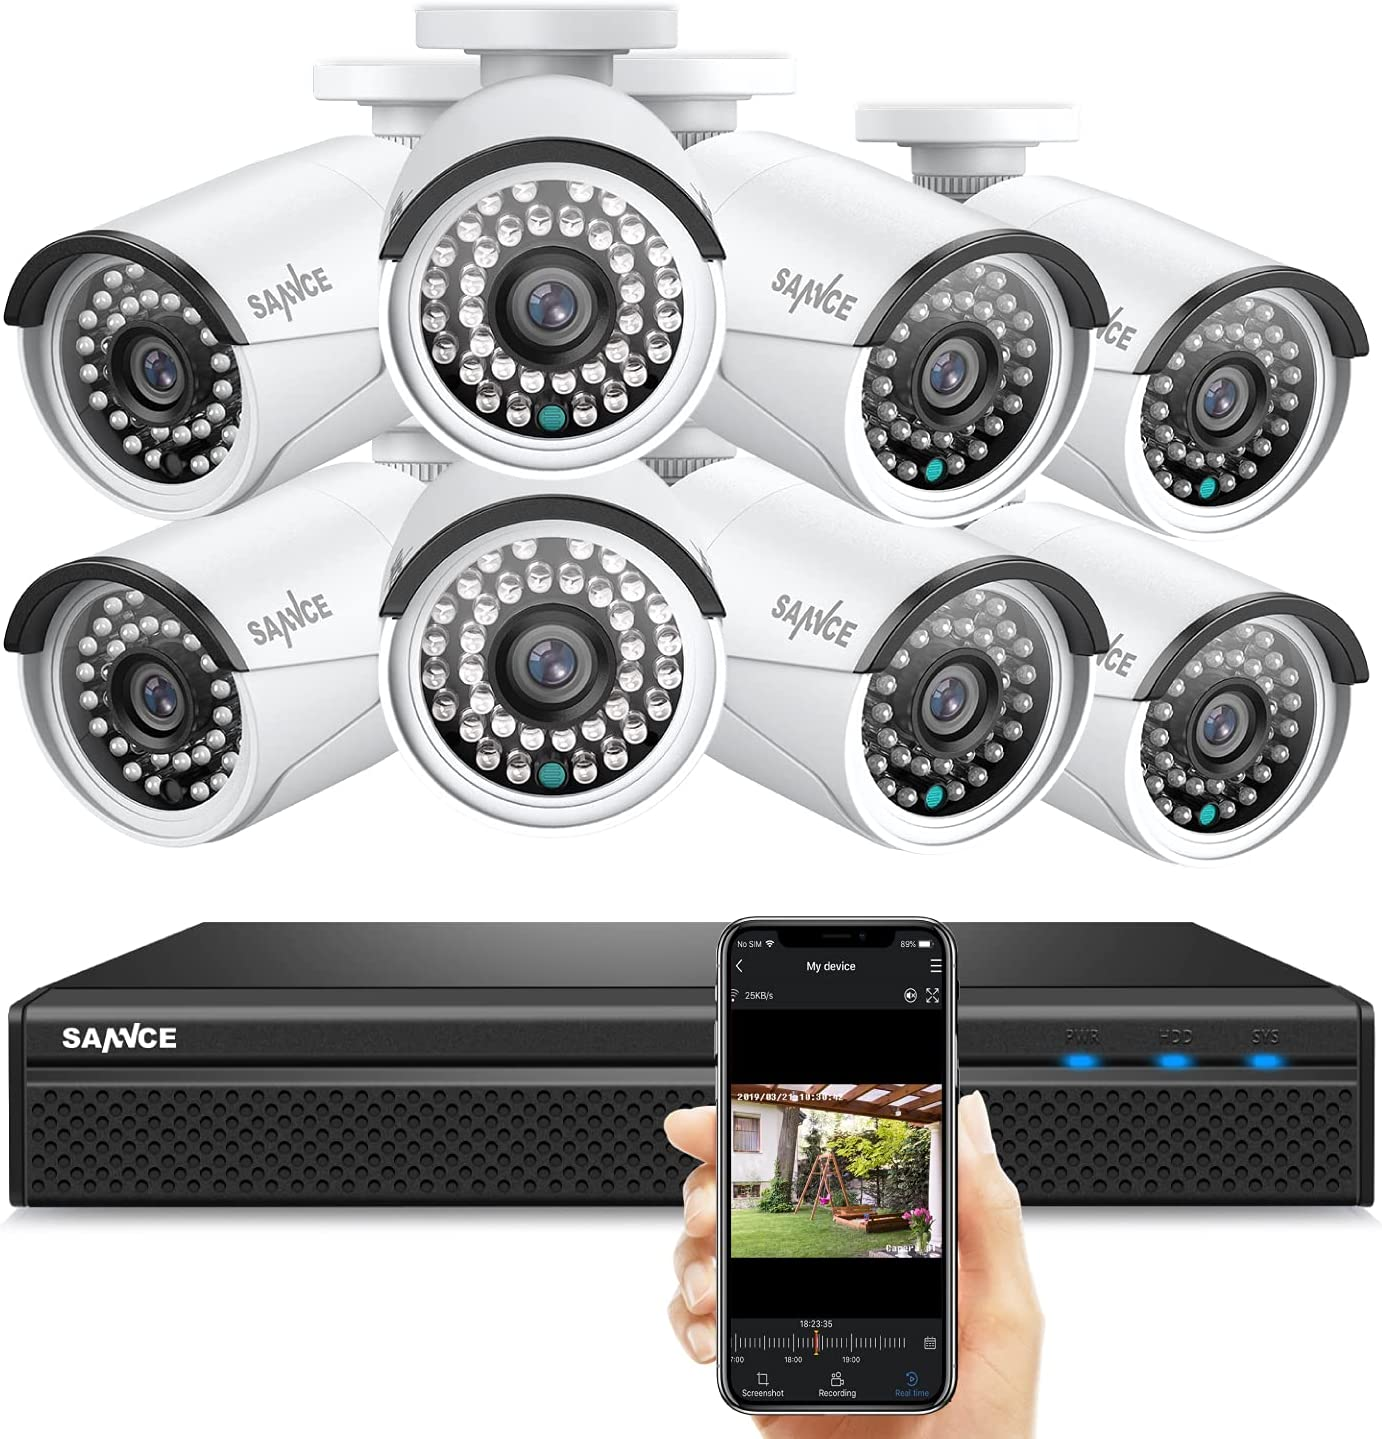 SANNCE 1080P FHD PoE Security System, 8CH 5MP Surveillance NVR with H.264+ Video Compression, 8Pcs 1080P HD Weatherproof Cameras with Smart IR LED, APP Push Alert, Remote Access (Without HDD)